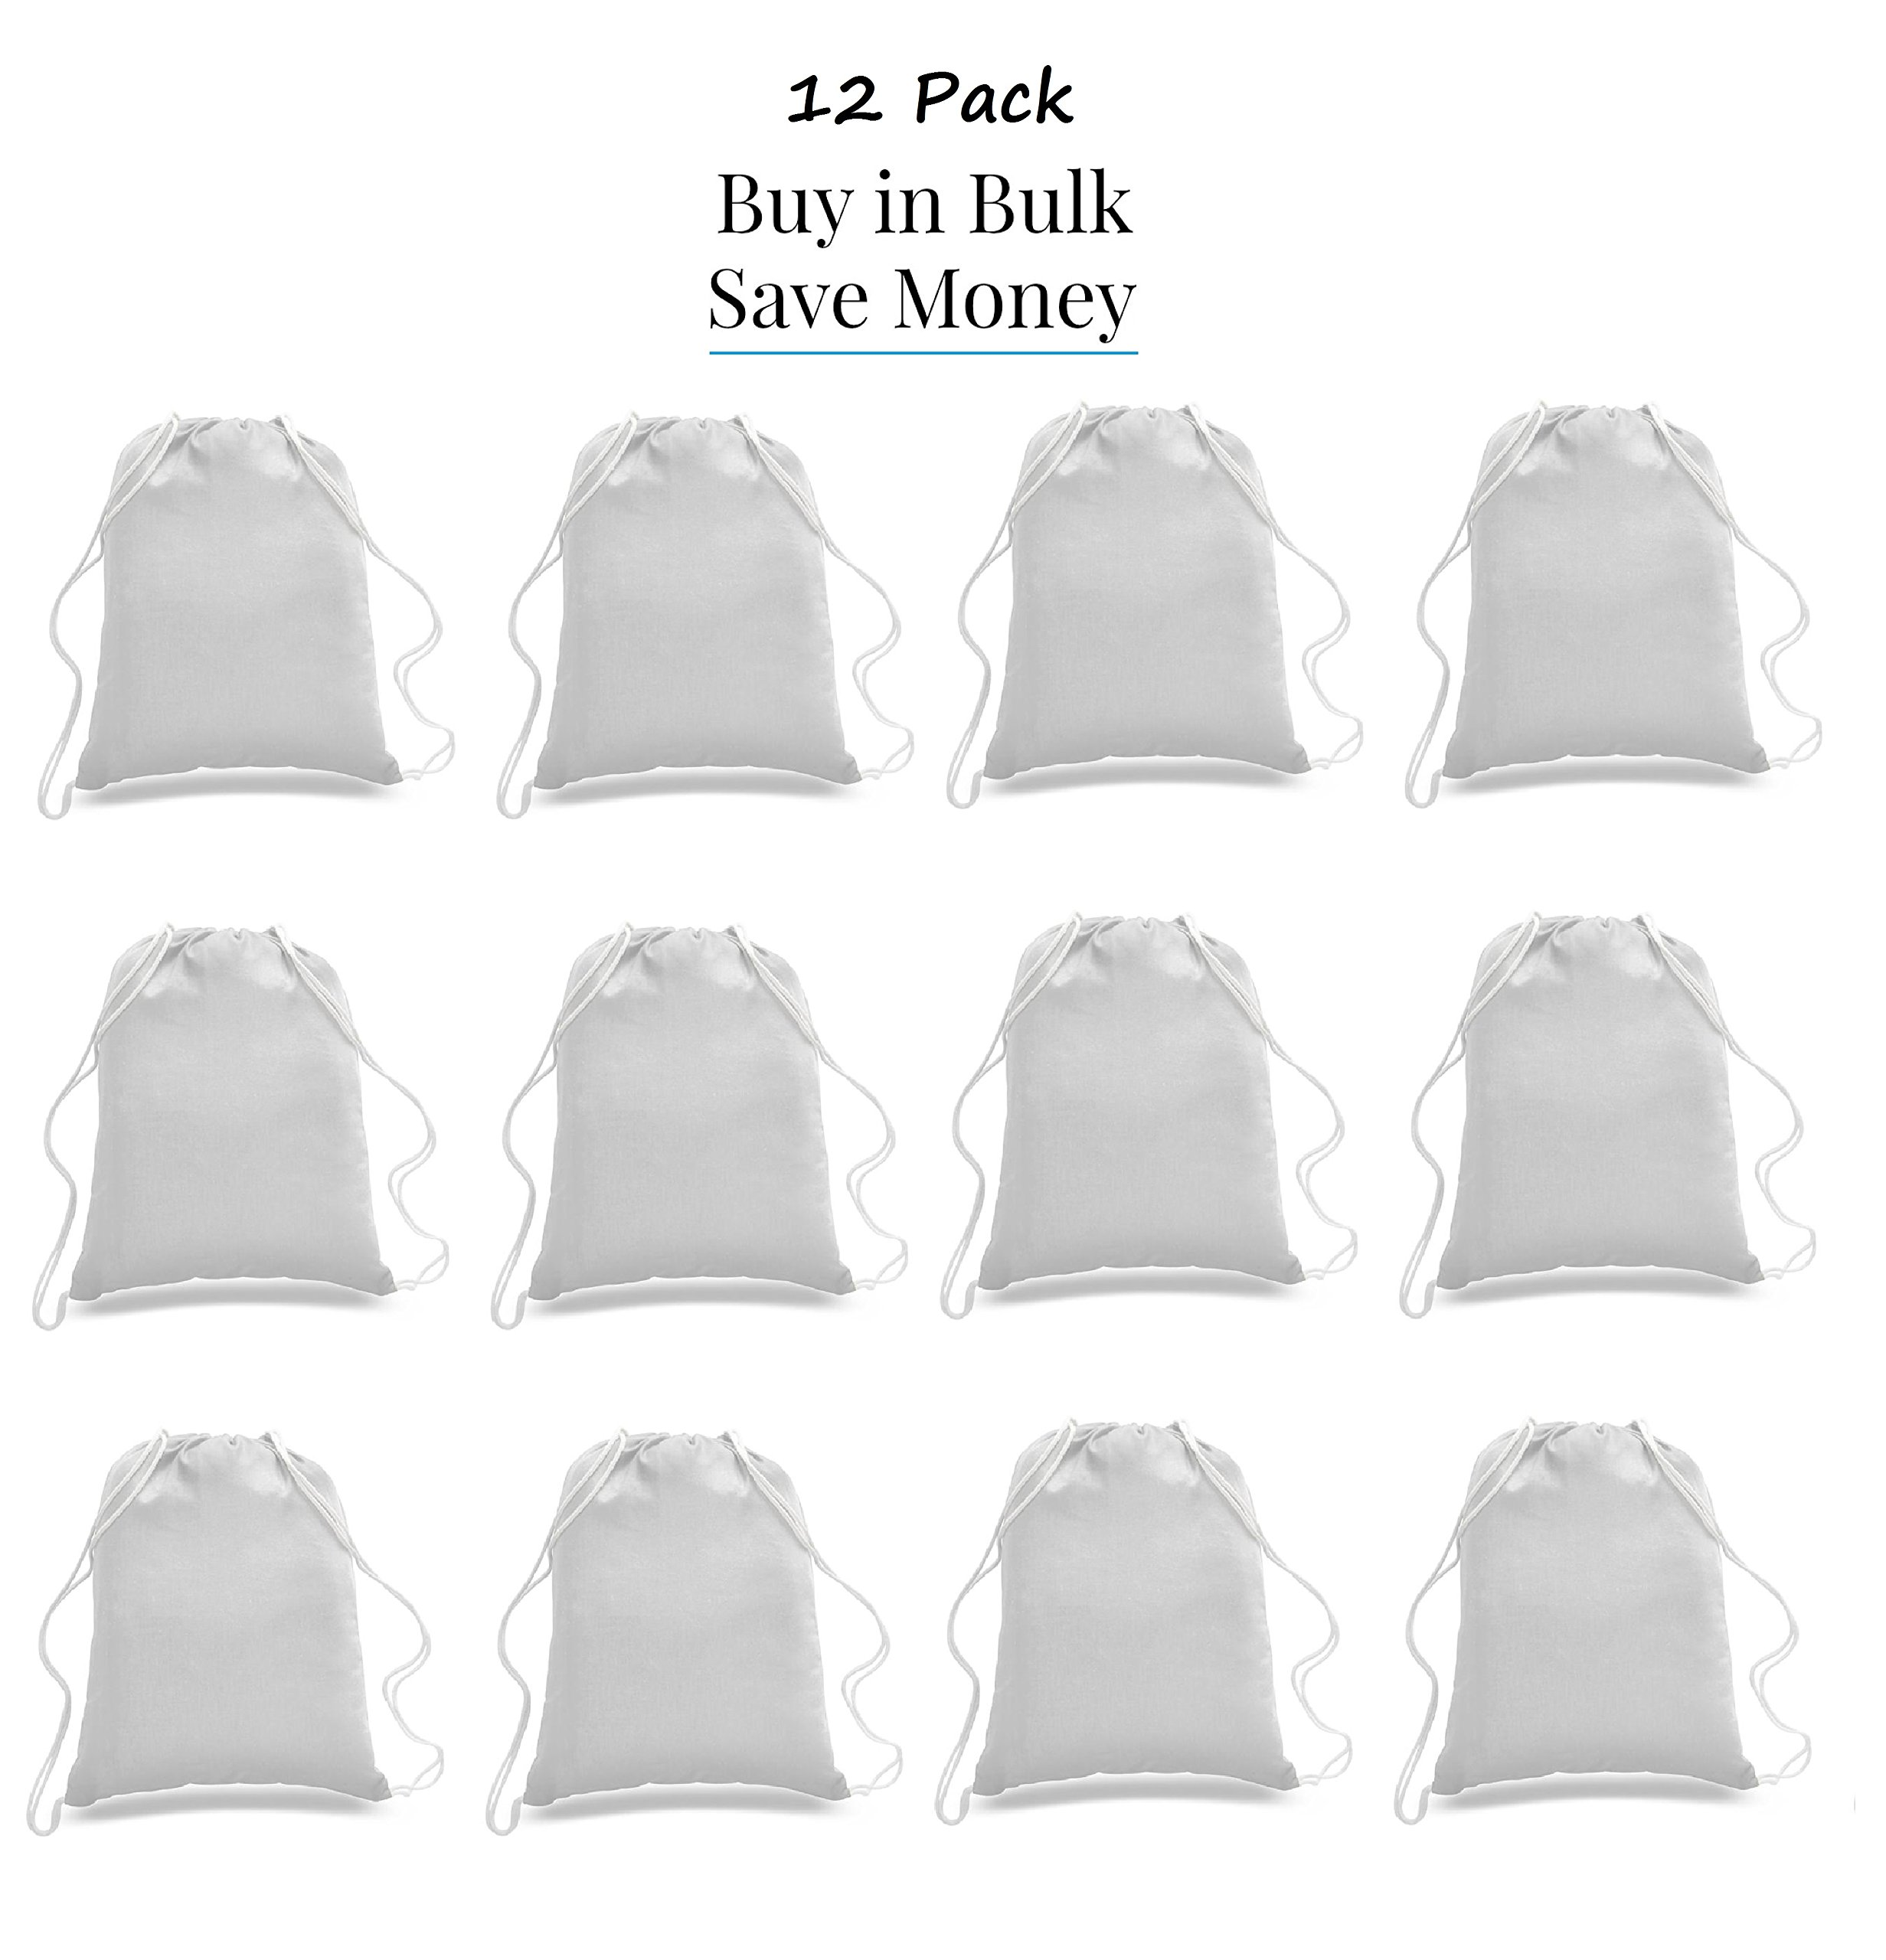 Great Deal! ( 12 Pack ) 1 DOZEN Budget Friendly Sport Drawstring Backpack %100 Cotton Bags for Sport,Gym or Promotional Plain Backpacks (WHITE)